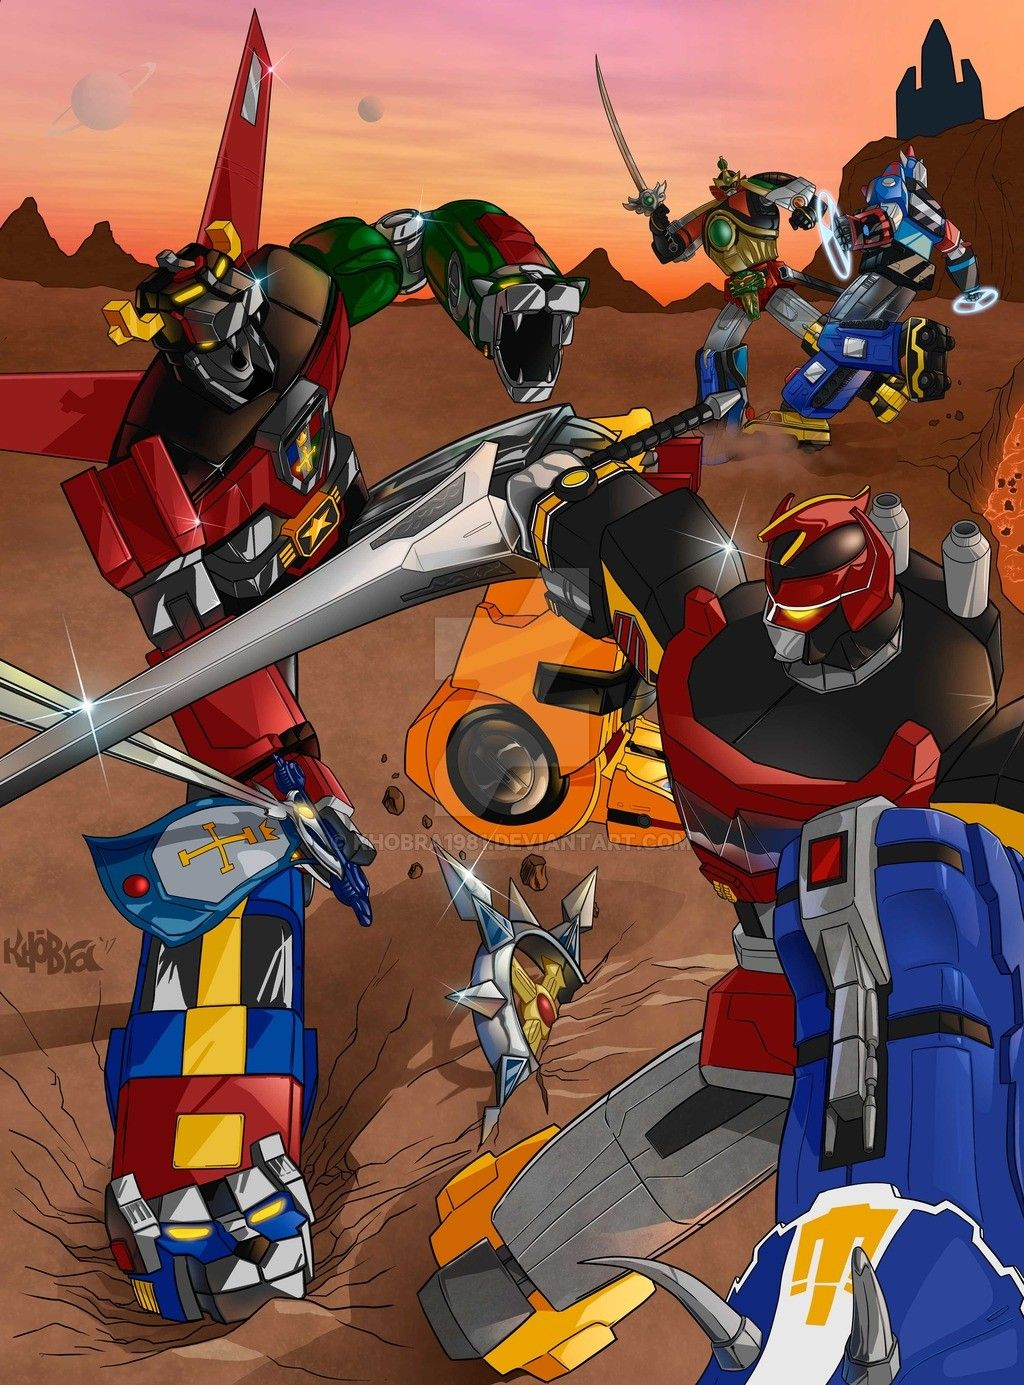 Image by O C on 80's/90's Toons Voltron, Power rangers